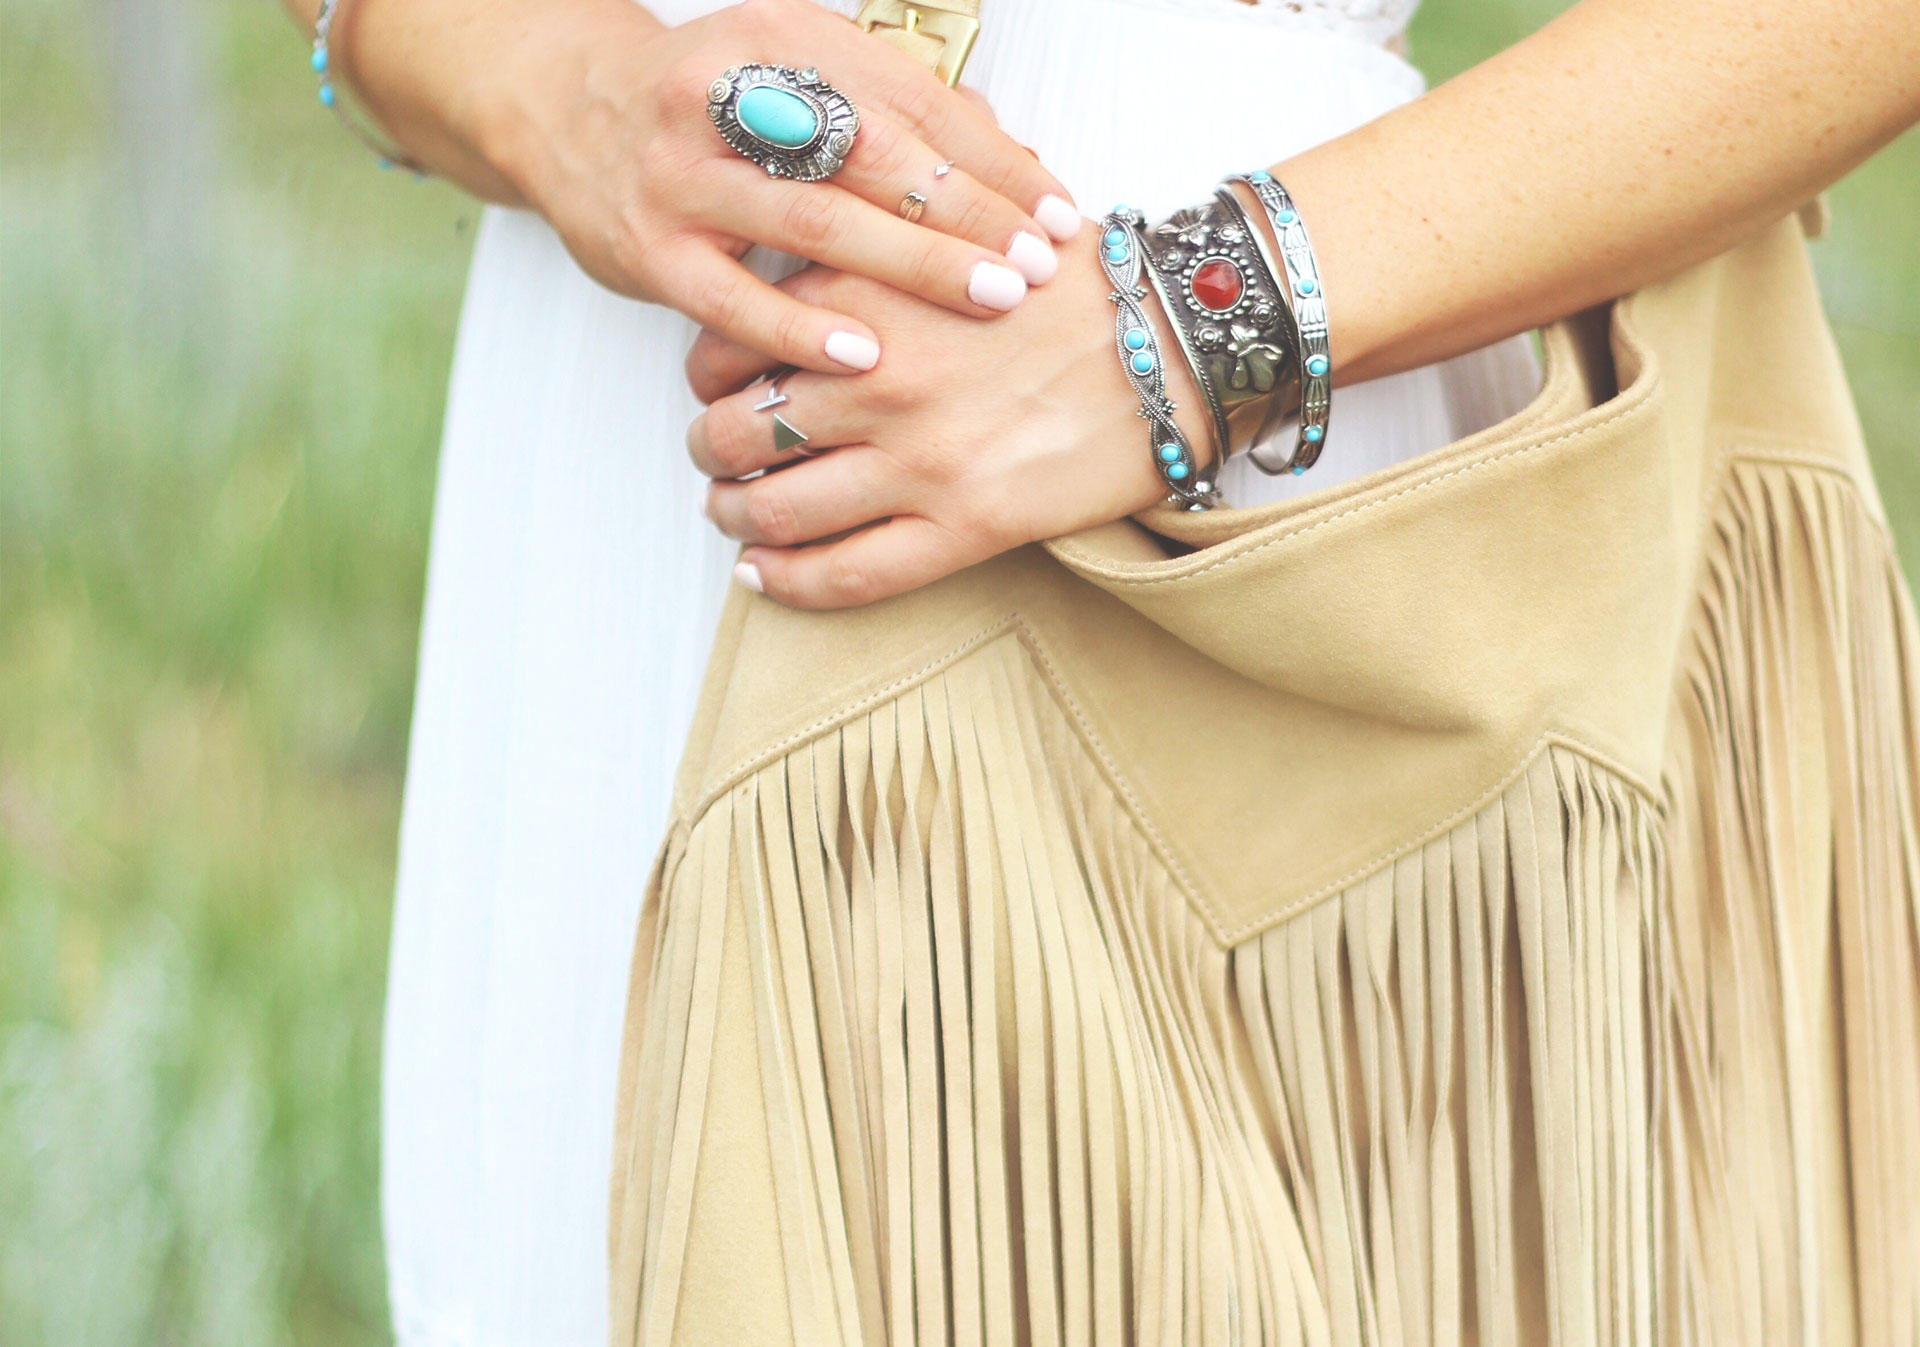 Suede is synonymous with western style and fringe adds a playful touch to any look.